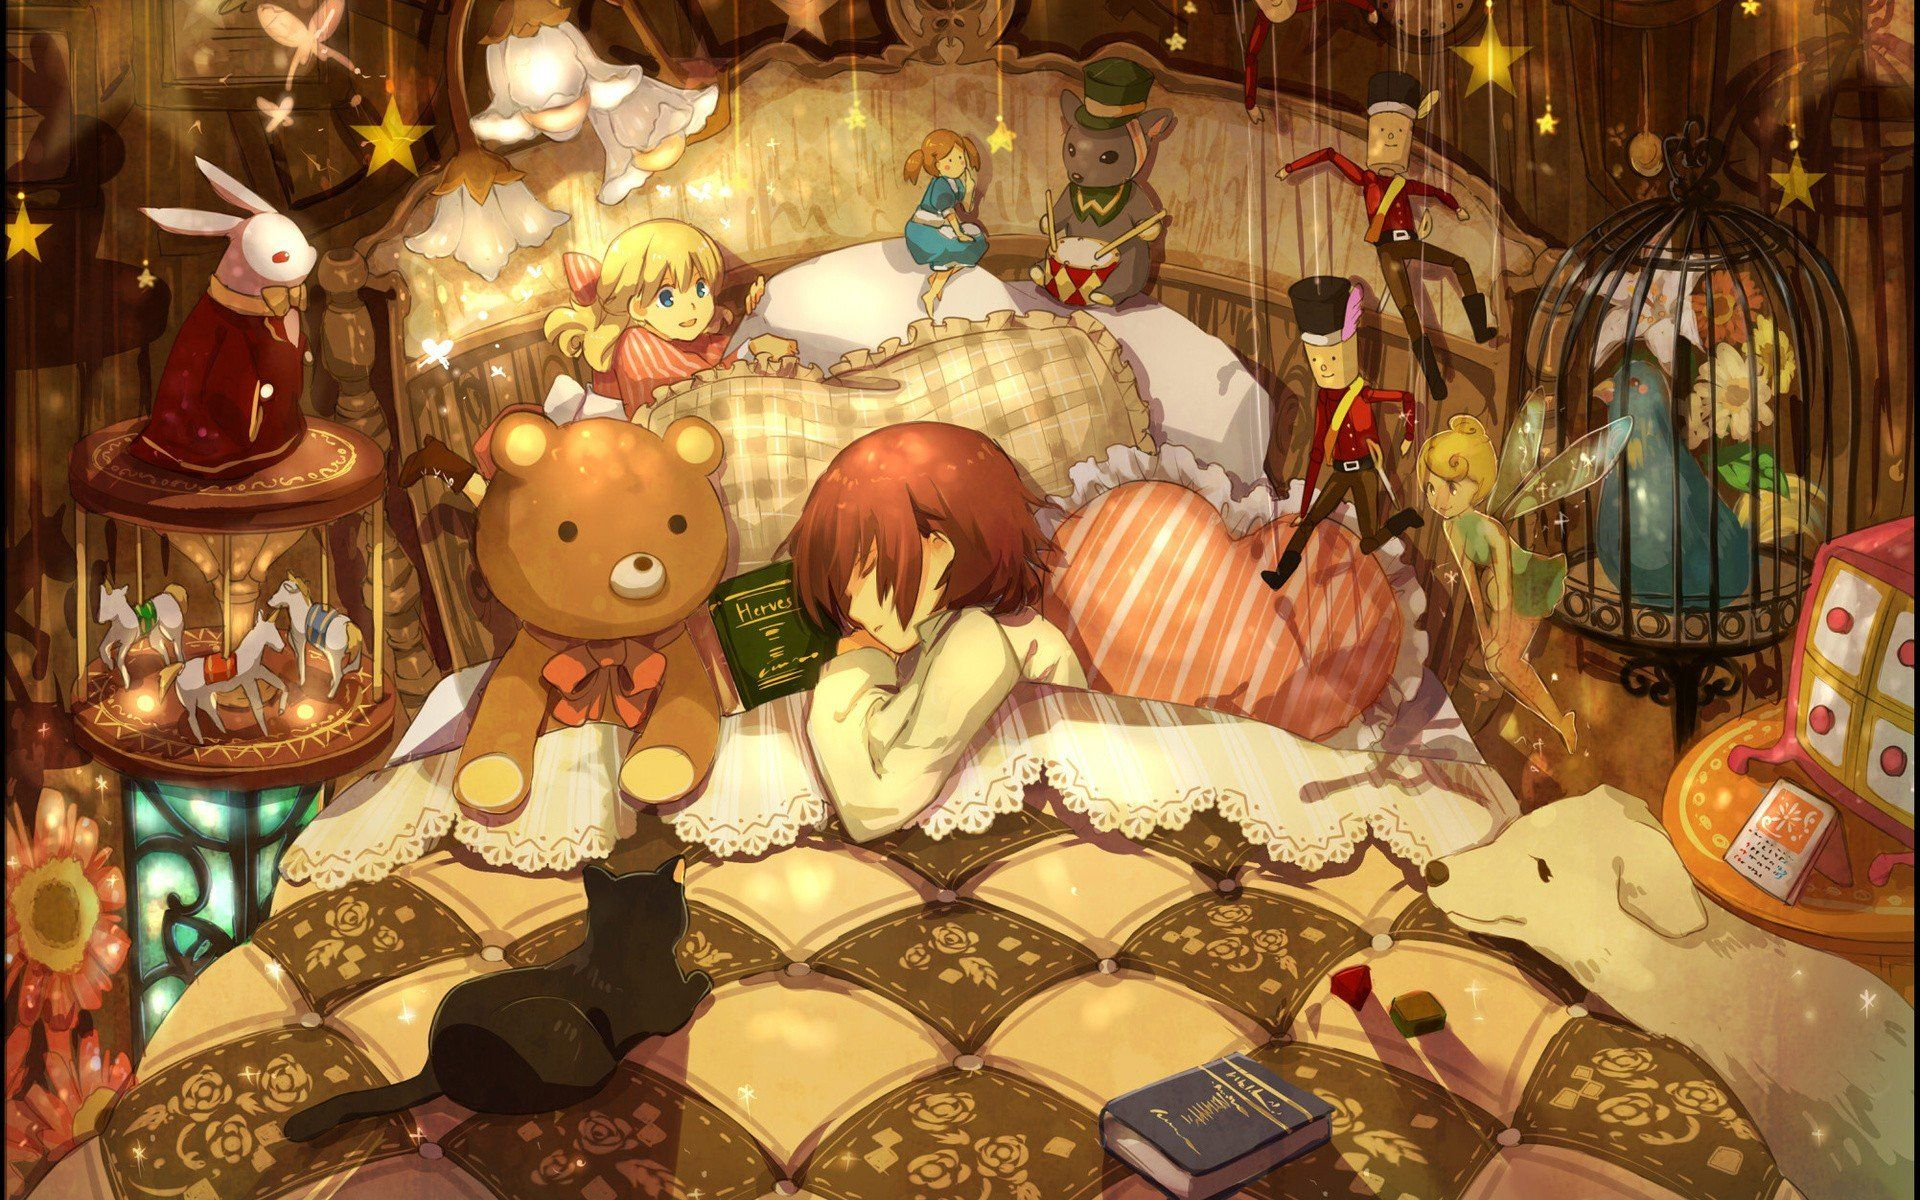 Anime Books Wallpapers Top Free Anime Books Backgrounds